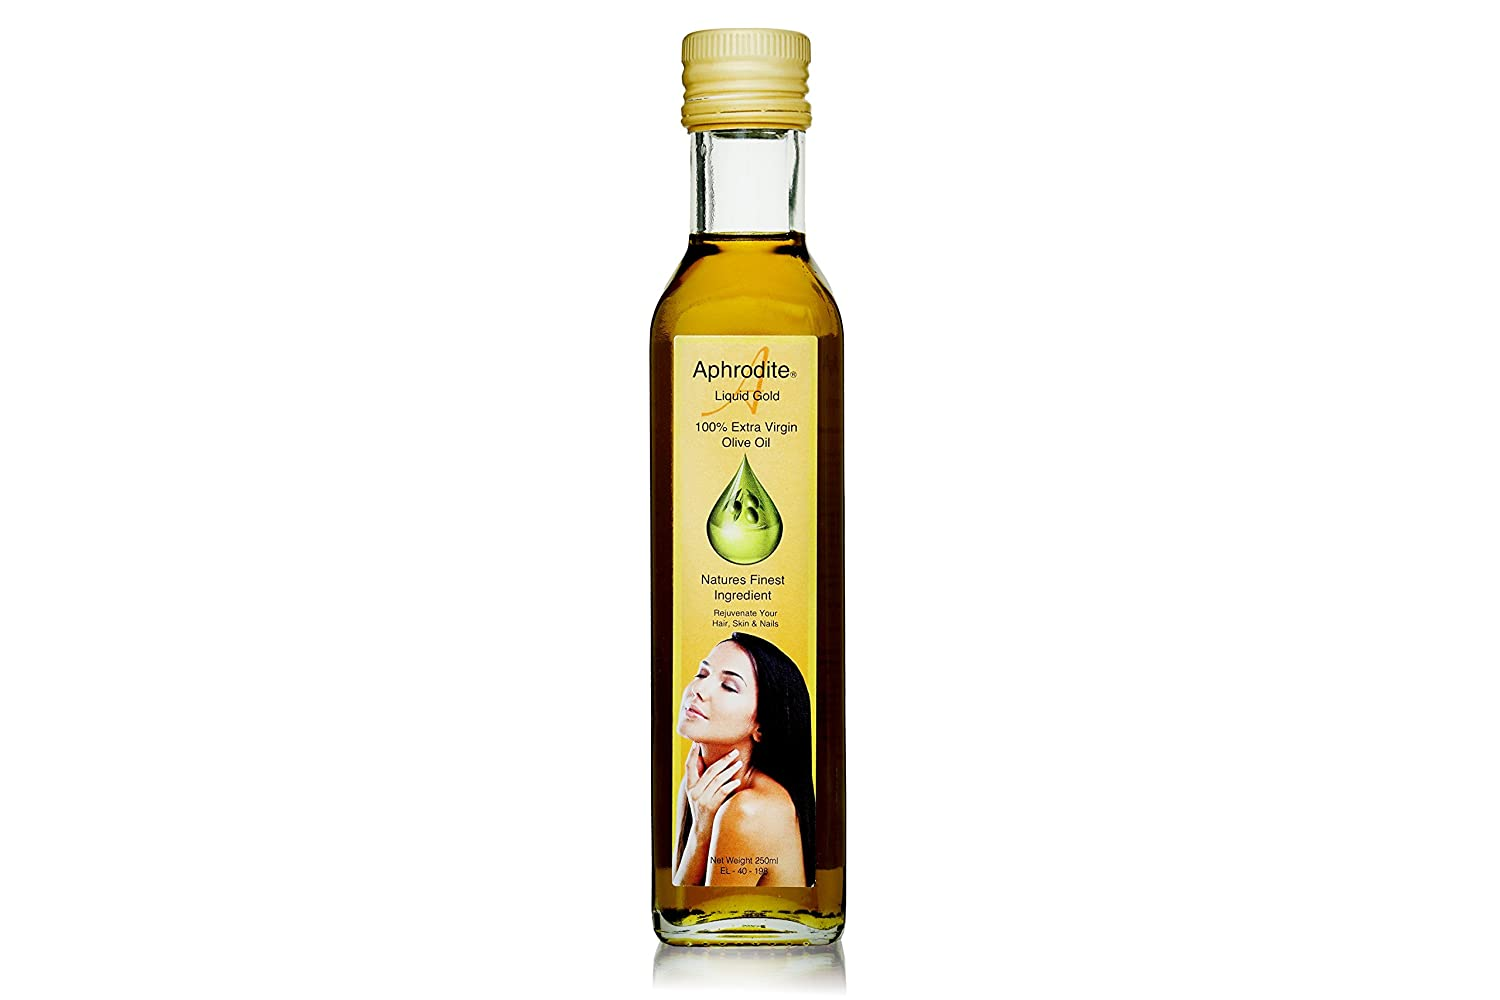 Aphrodite Extra Virgin Olive Oil 250ml 100 Pure Olive Oil For